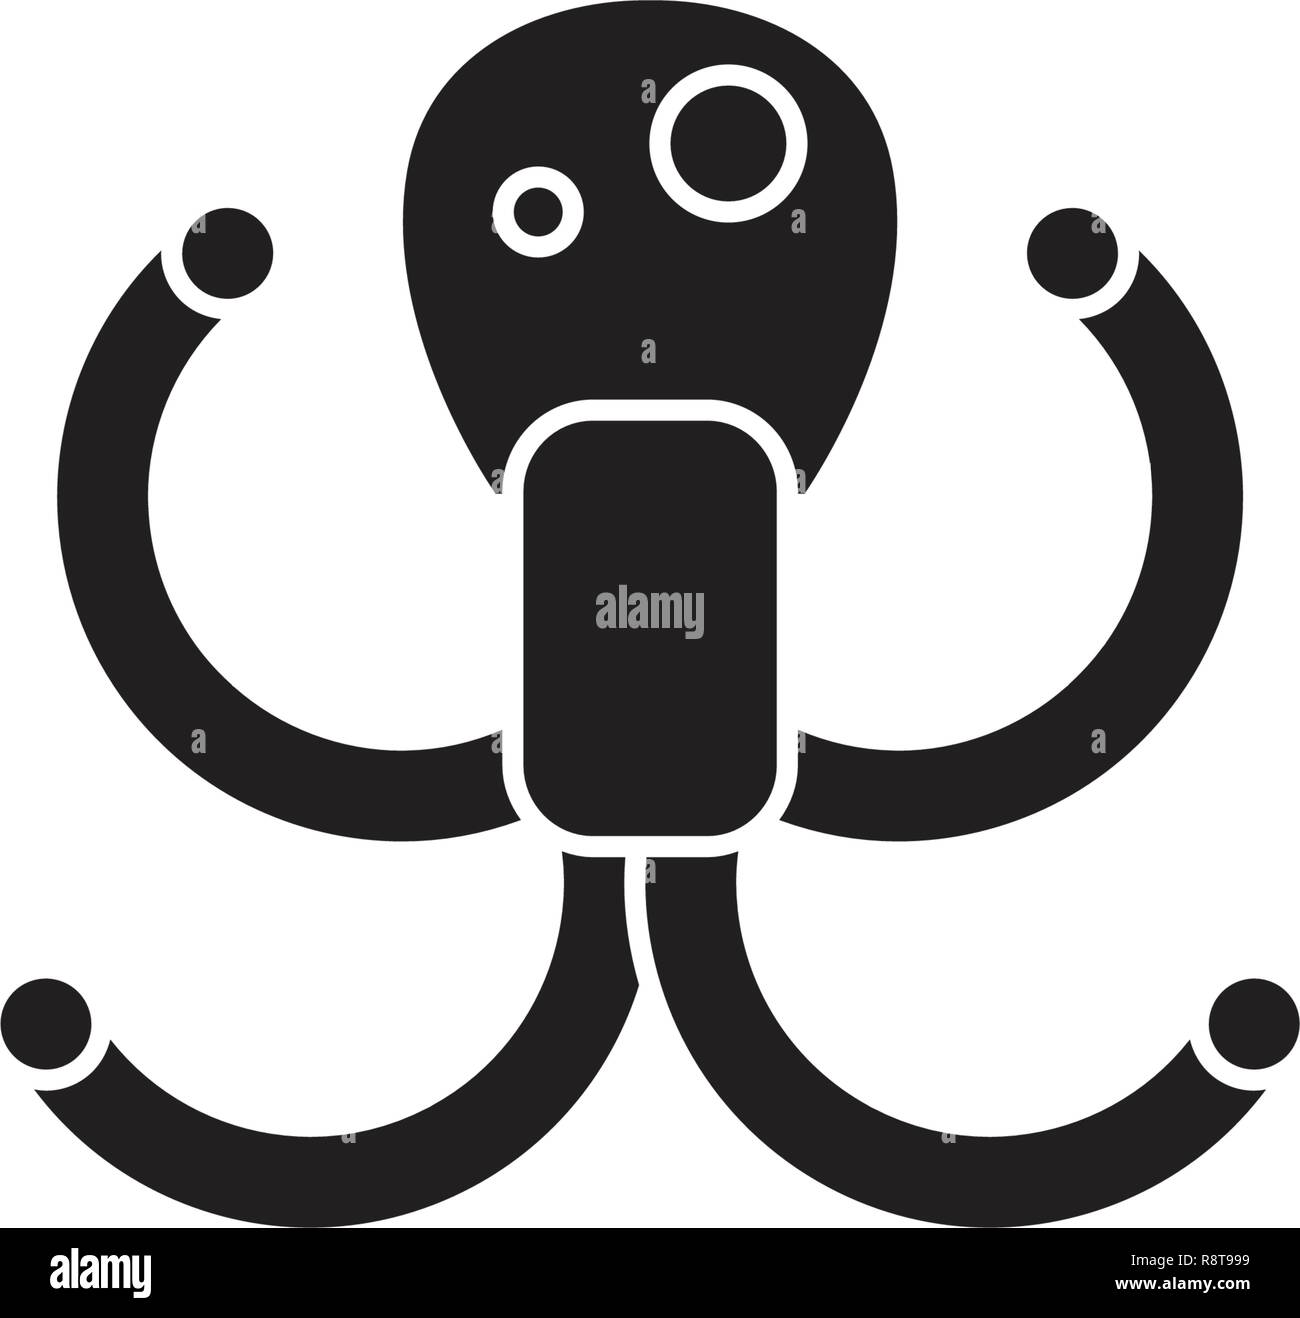 Octopus black vector concept icon. Octopus flat illustration, sign - Stock Image